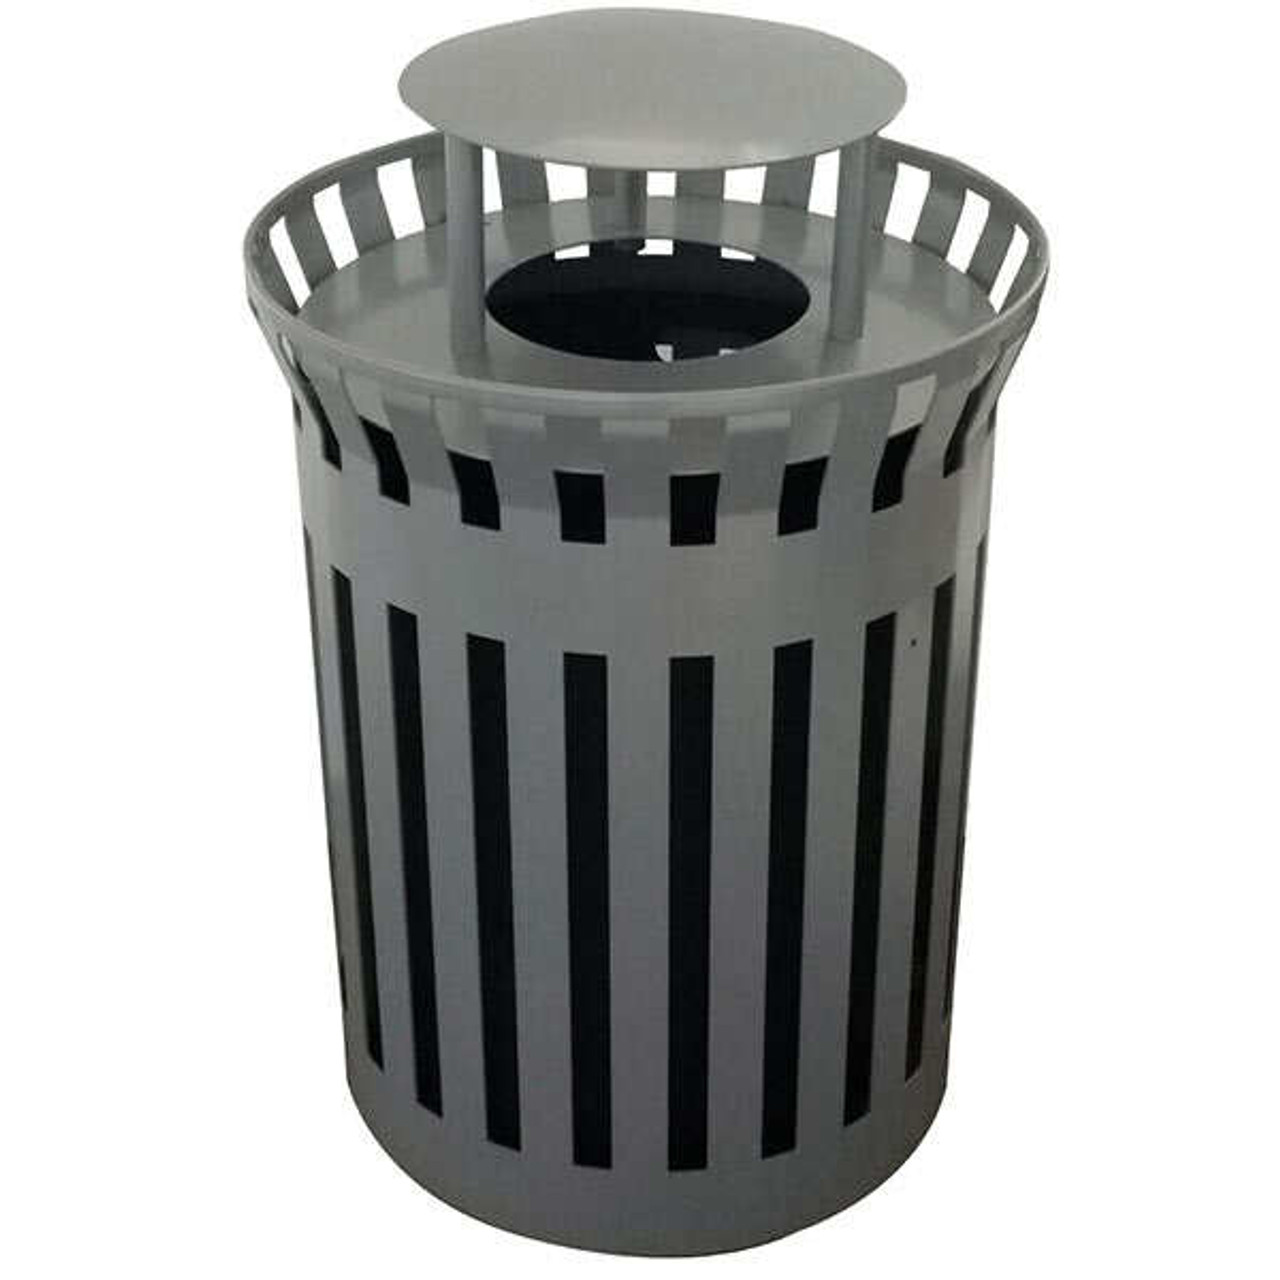 38 Gallon Flat Steel Waste Container with Rain Hood Top MF3399